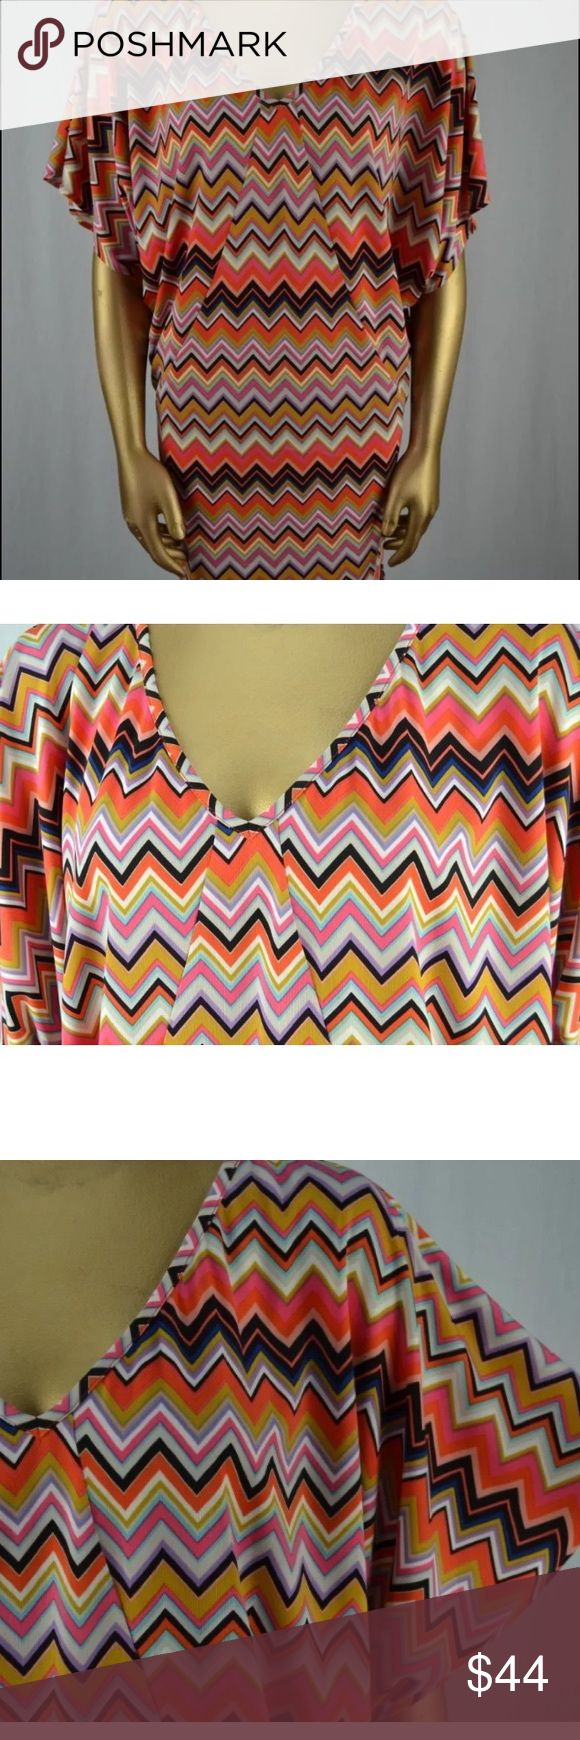 TRINA TURK BRIGHT CHEVRON MINI SHIFT STRETCH DRESS TRINA TURK BRIGHT COLORED CHEVRON STRIPED BAT WING SHIFT DRESS. SIZE S FUN & COMFY. POLY & SPANDEX. THANK YOU FOR YOUR CONSIDERATION. PLEASE, FEEL FREE TO ASK ME ANY QUESTIONS. Trina Turk Dresses